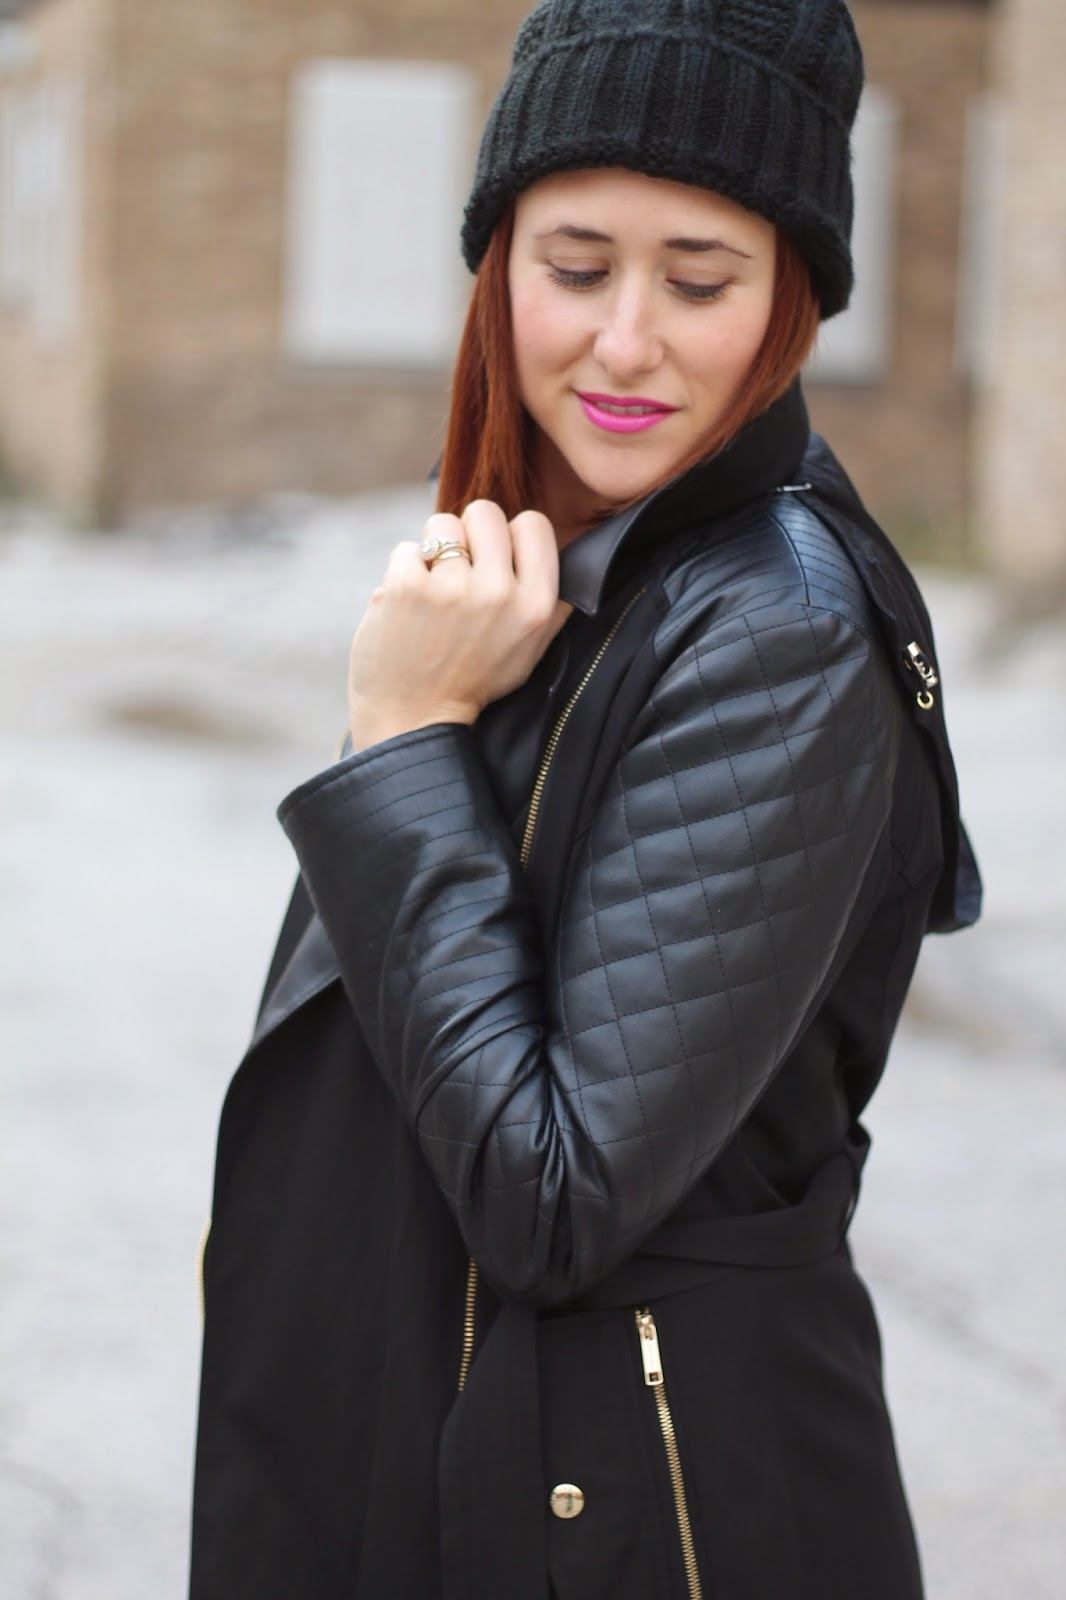 quilted, black leather, jacket